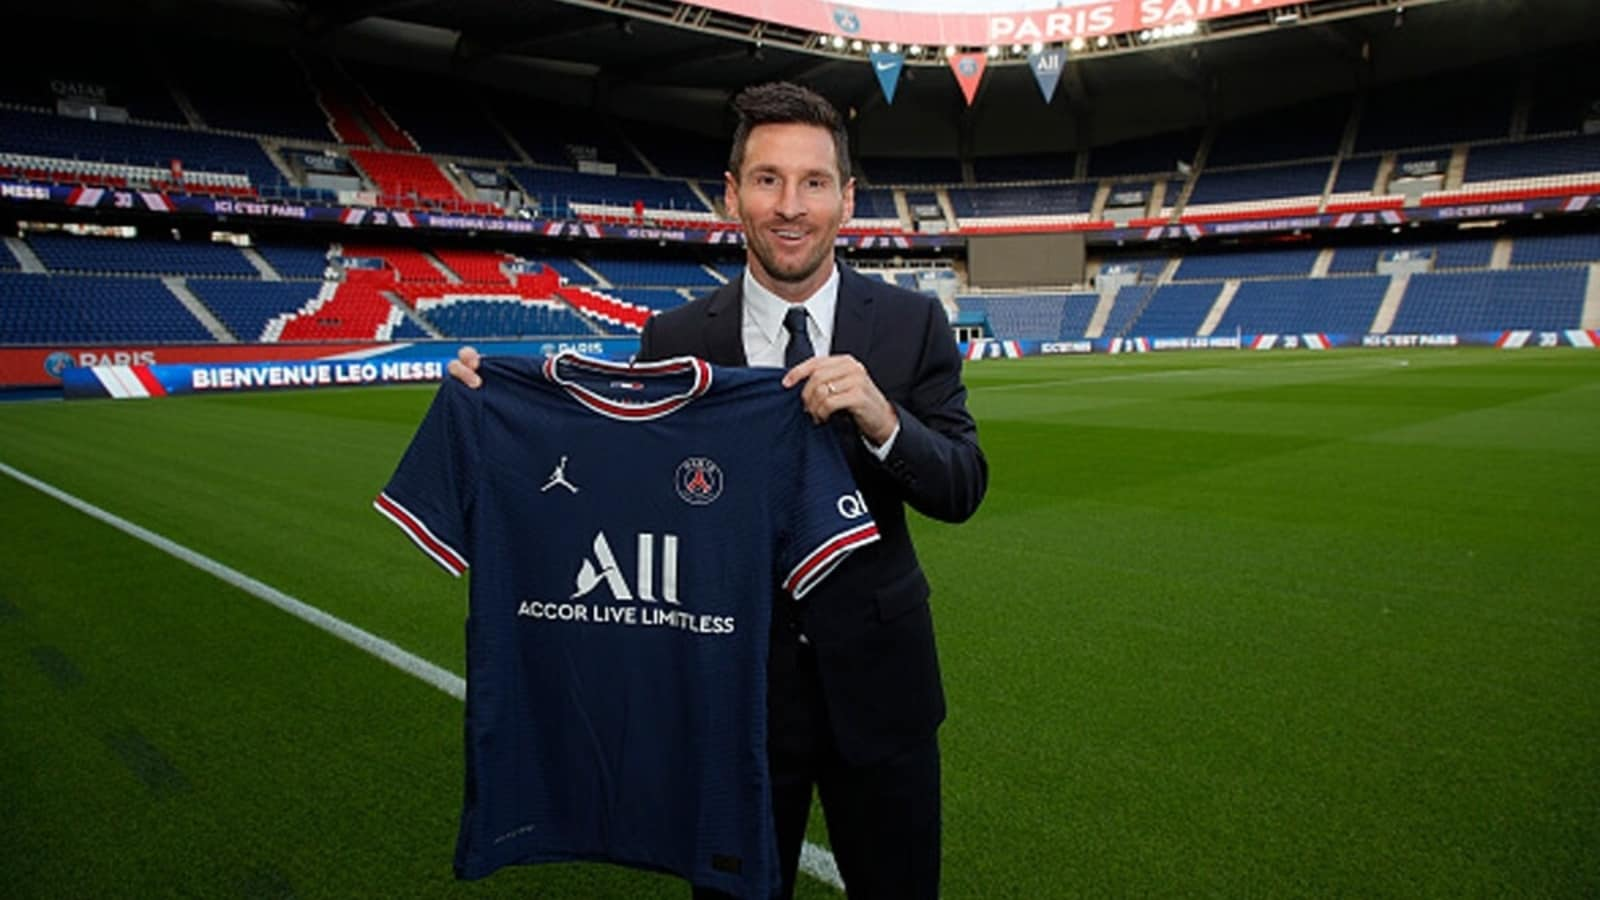 Lionel Messi joins Paris Saint-Germain on two-year deal after Barcelona exit | Football News - Hindustan Times